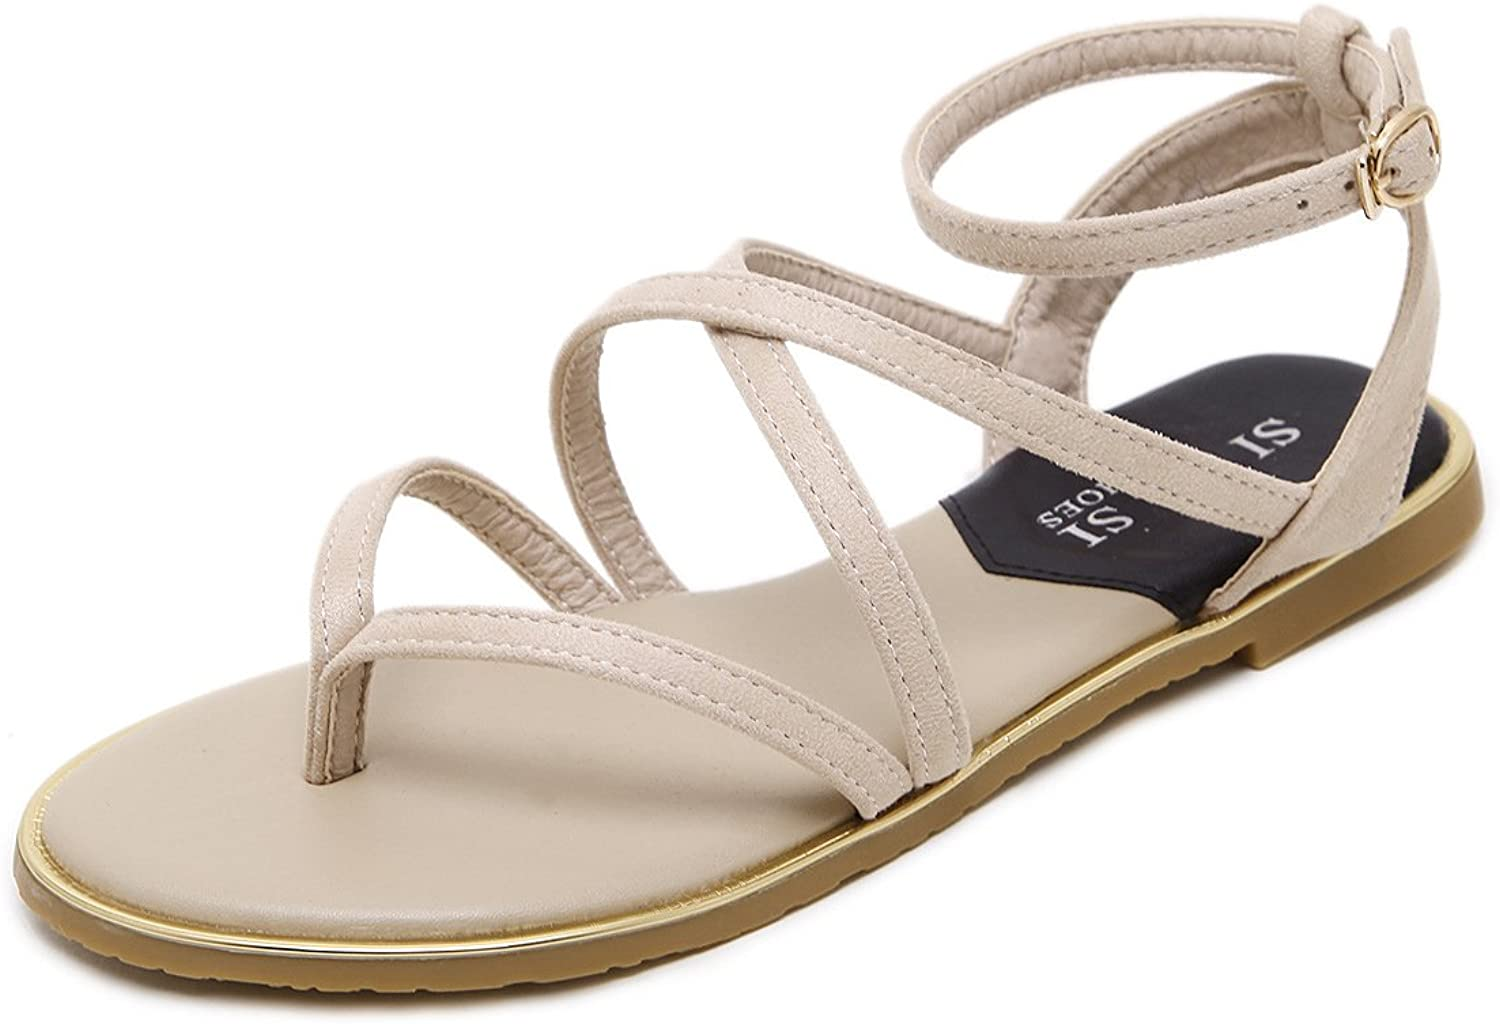 Mubeuo Women's Leather Ankle Strap Summer Flat Sandals Sandles